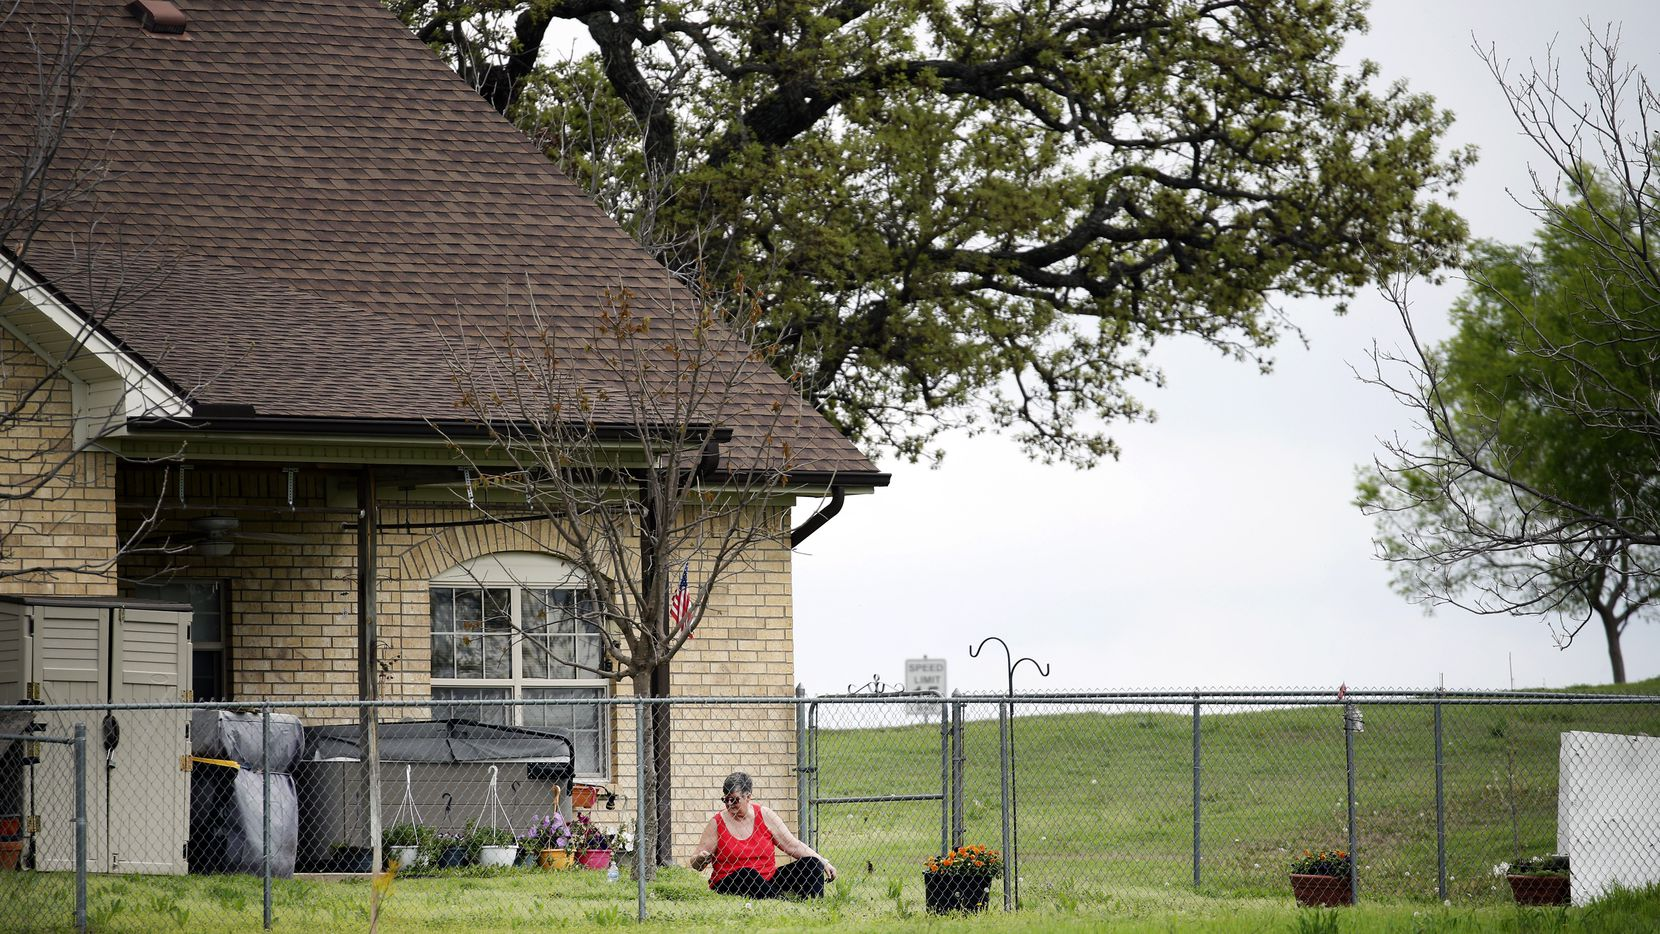 A woman pulls weeds in her yard outside one of the cottage duplex units at Texas Masonic Retirement Center on W. Division St. in Arlington on Wednesday March 18, 2020.